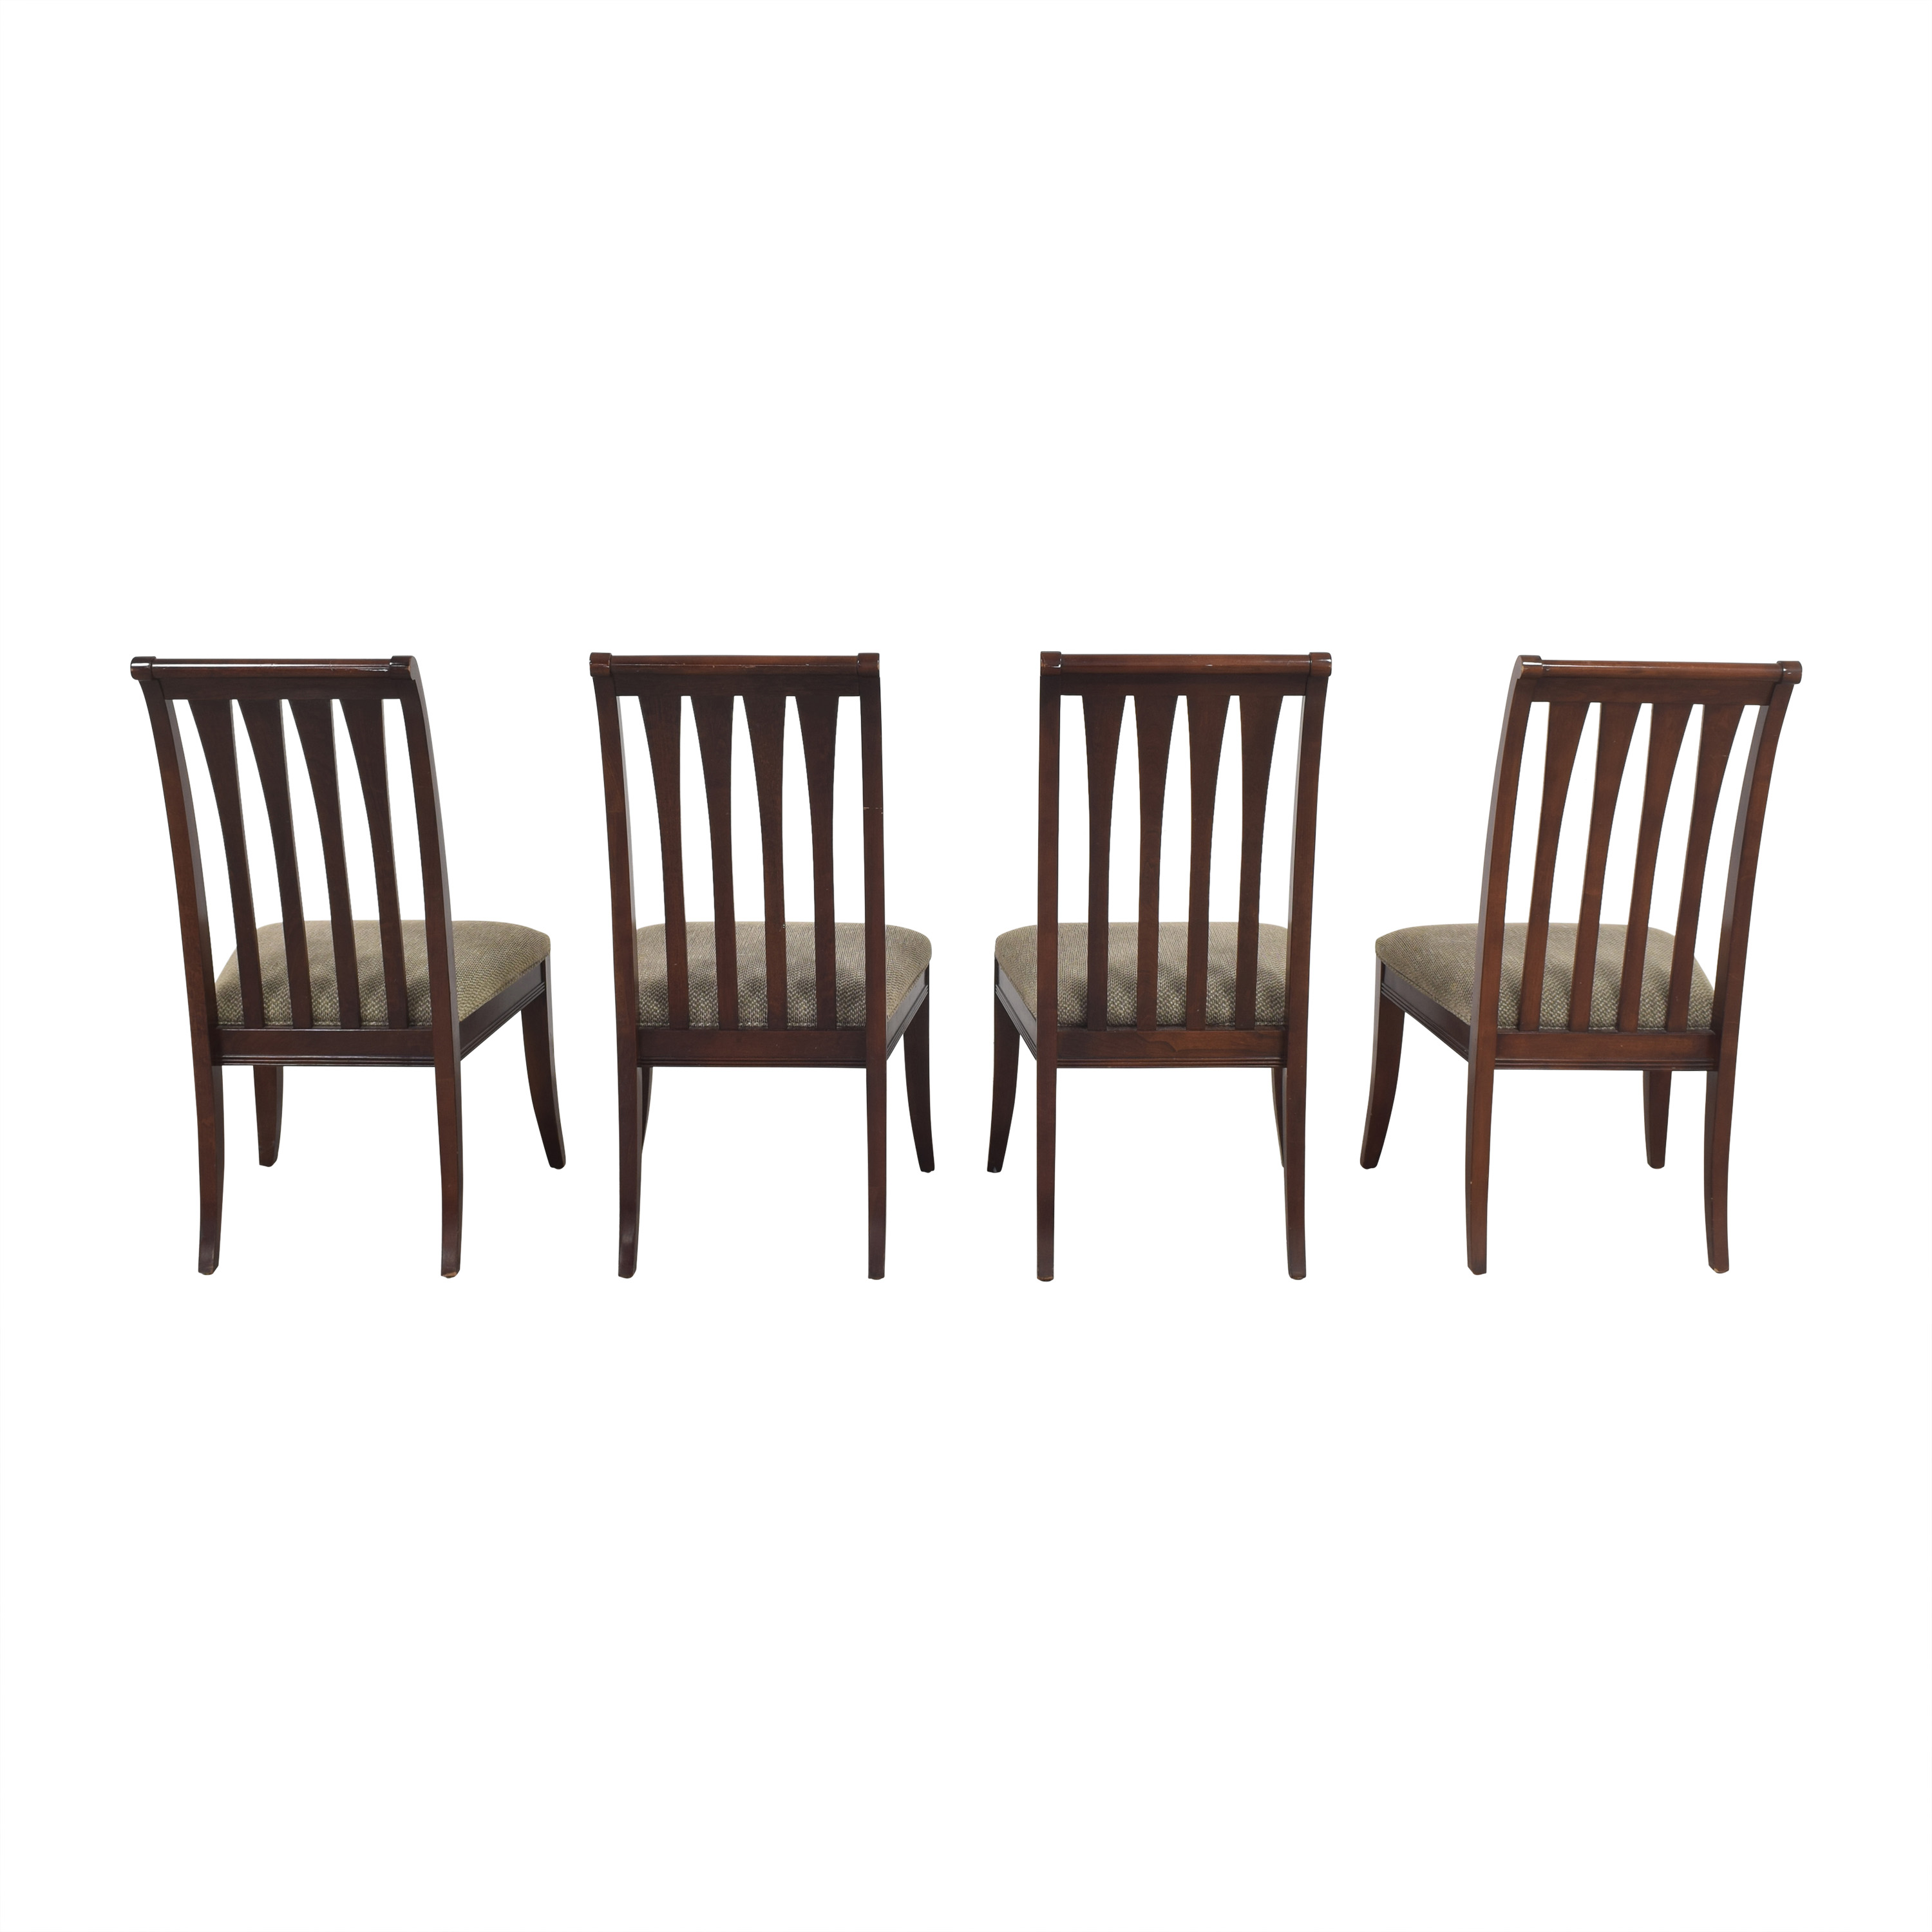 Ethan Allen Ethan Allen Avenue Collection Dining Chairs second hand